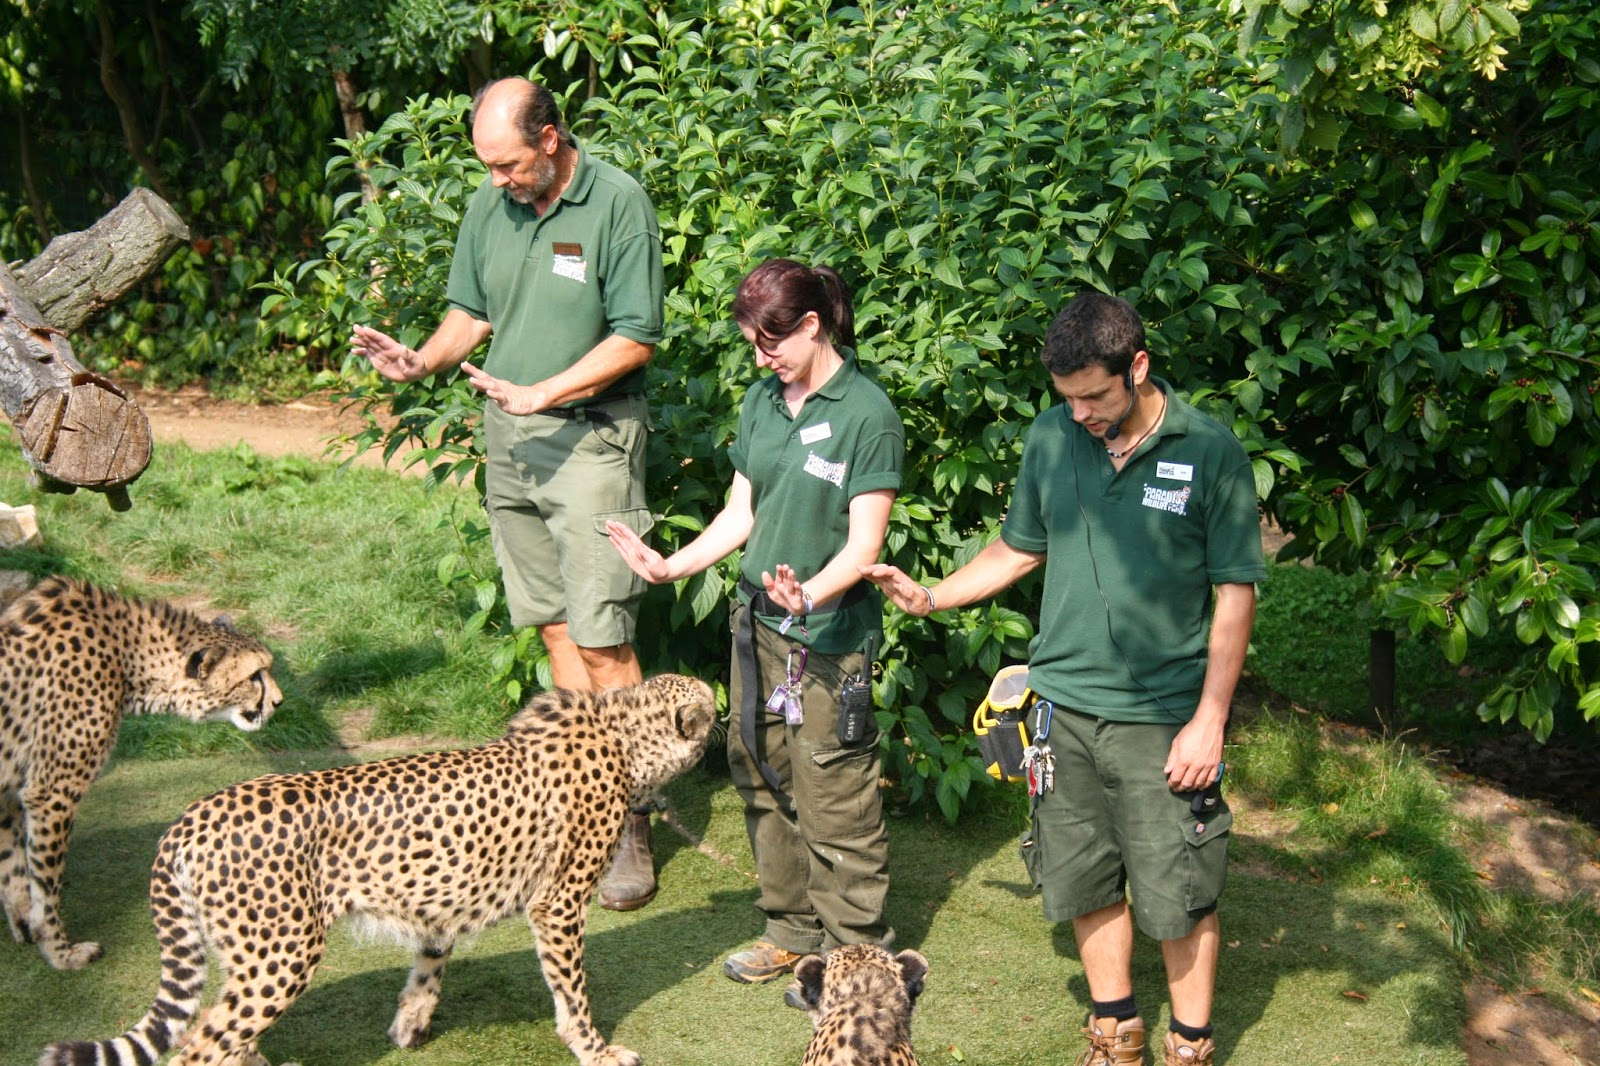 Paradise Zoo News: How to become a Zookeeper: